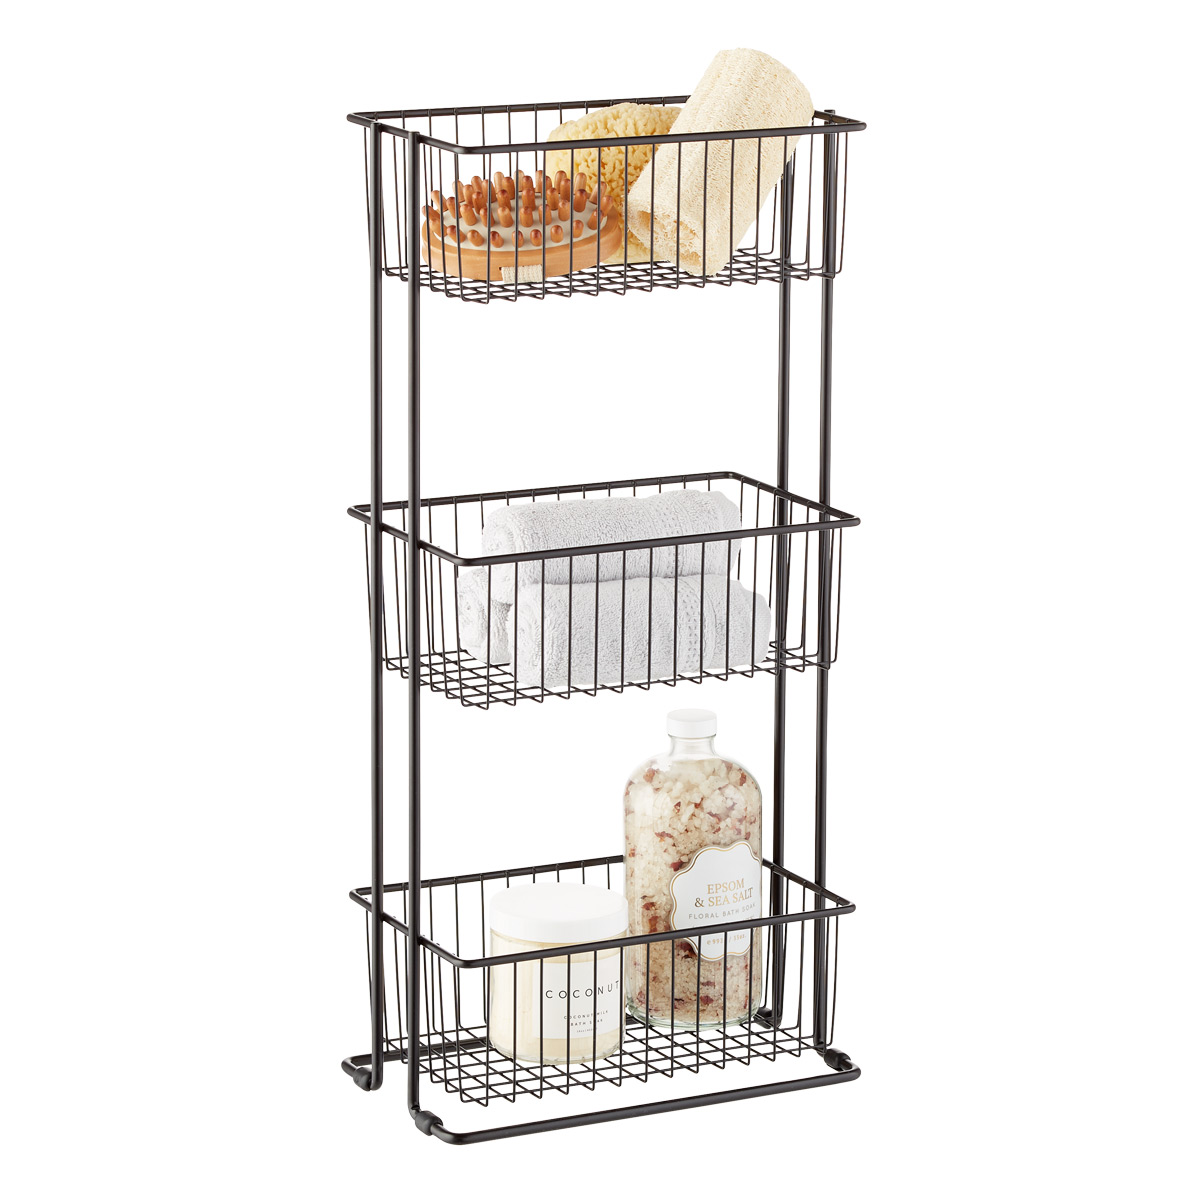 Matte Black 3-Tier Shelf Basket Tower